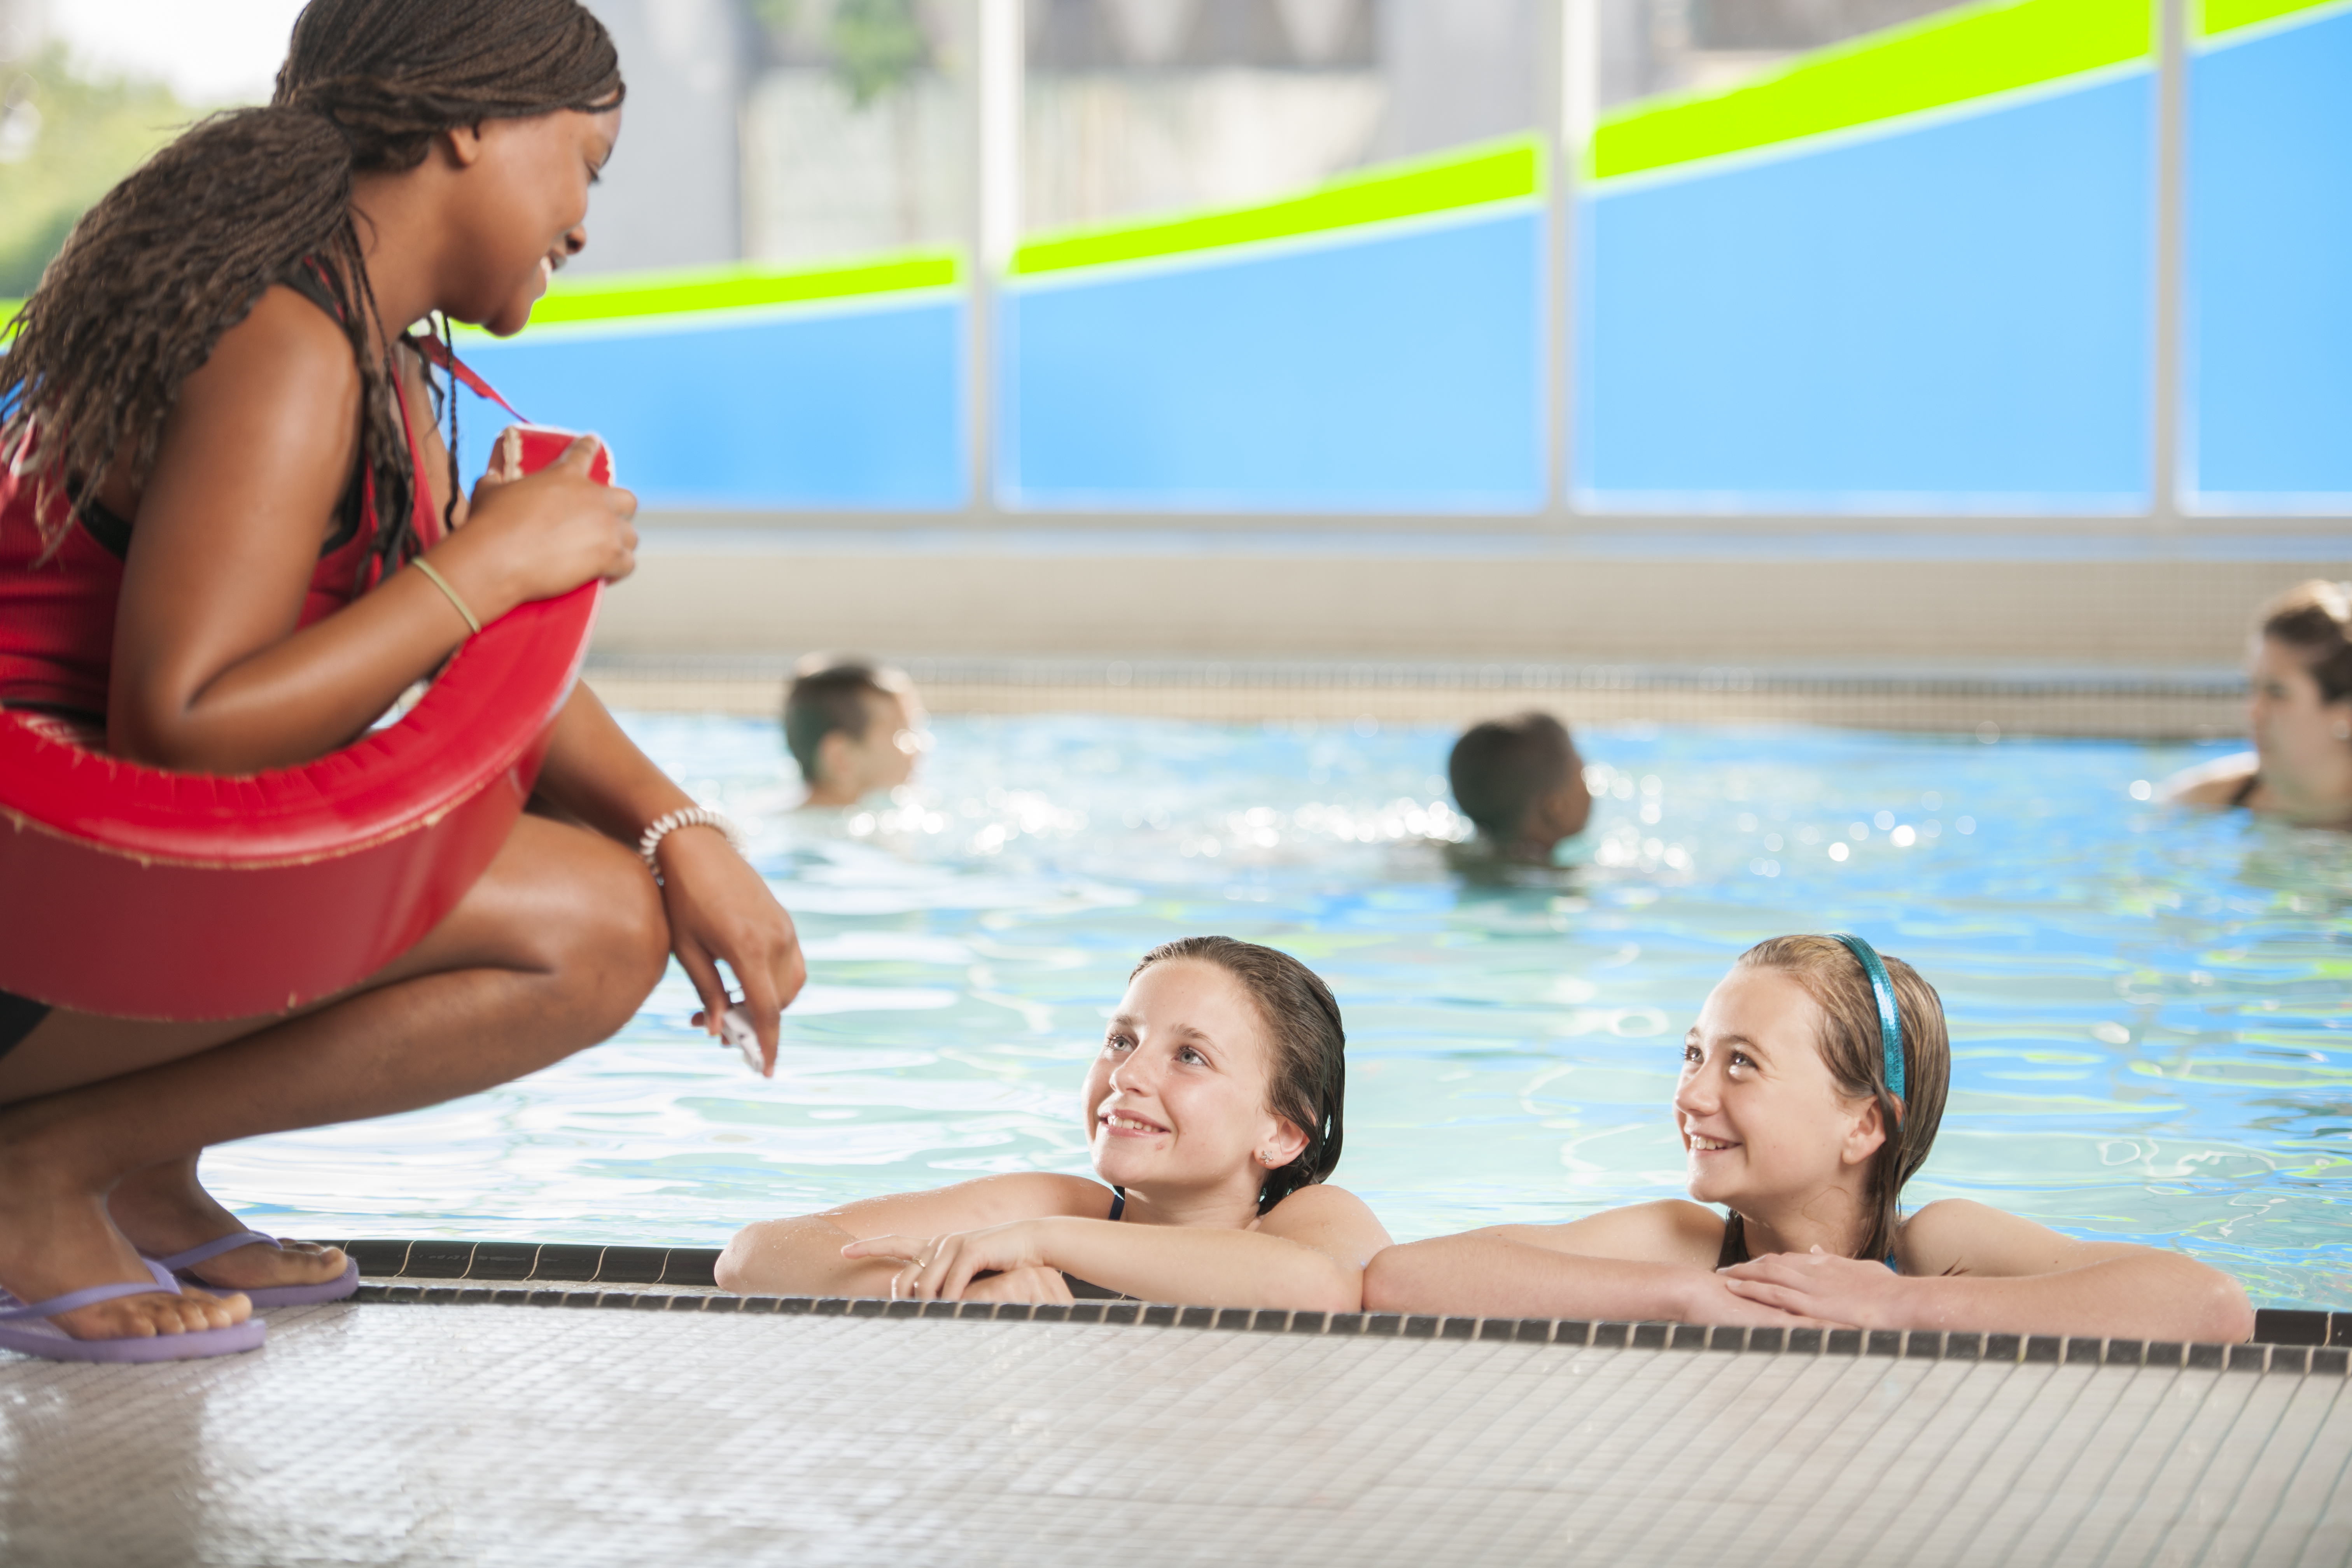 Learning to Swim from a Lifeguard